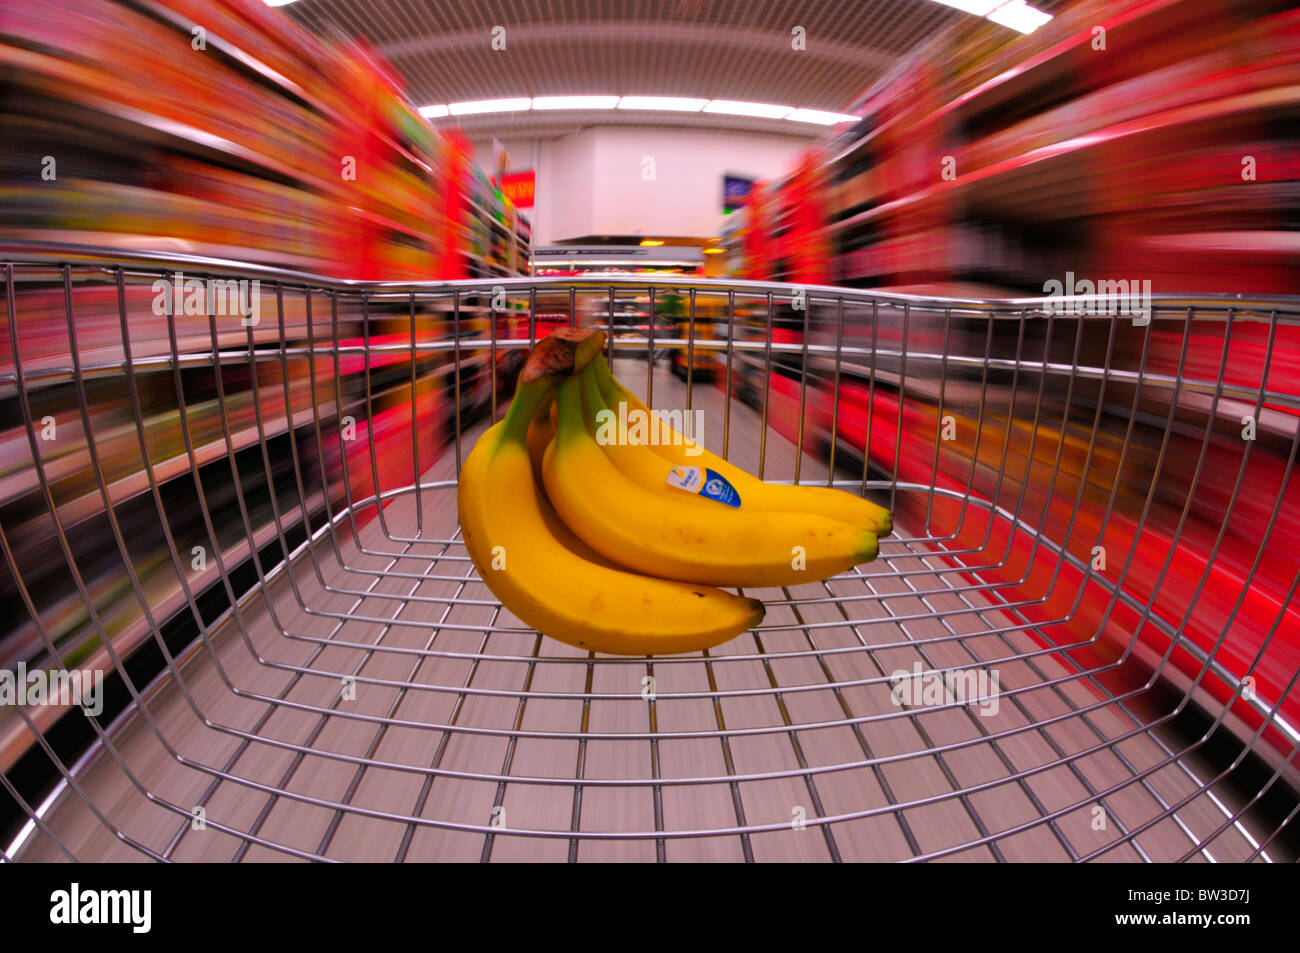 Bananas in supermarket trolley cart with motion blur taken with fisheye lens - Stock Image